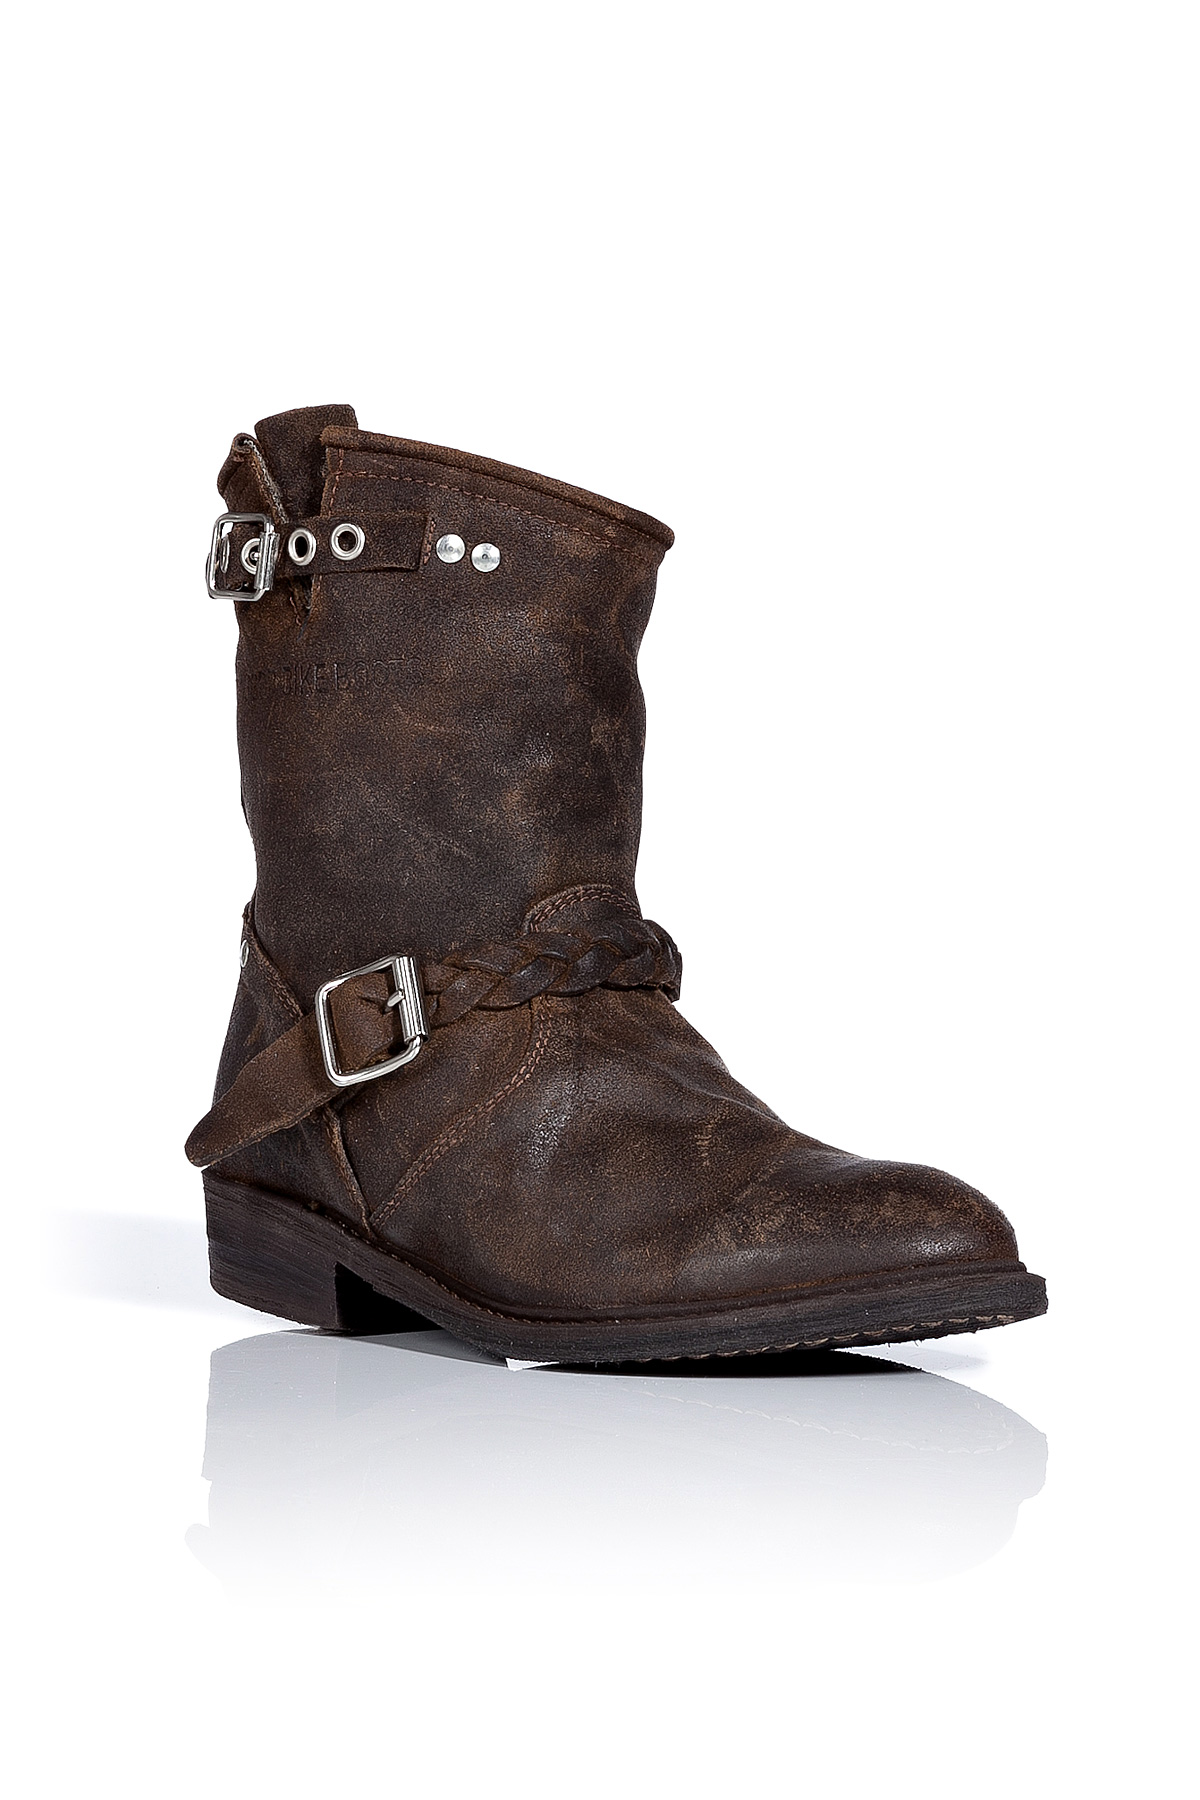 golden goose deluxe brand brown distressed leather wool